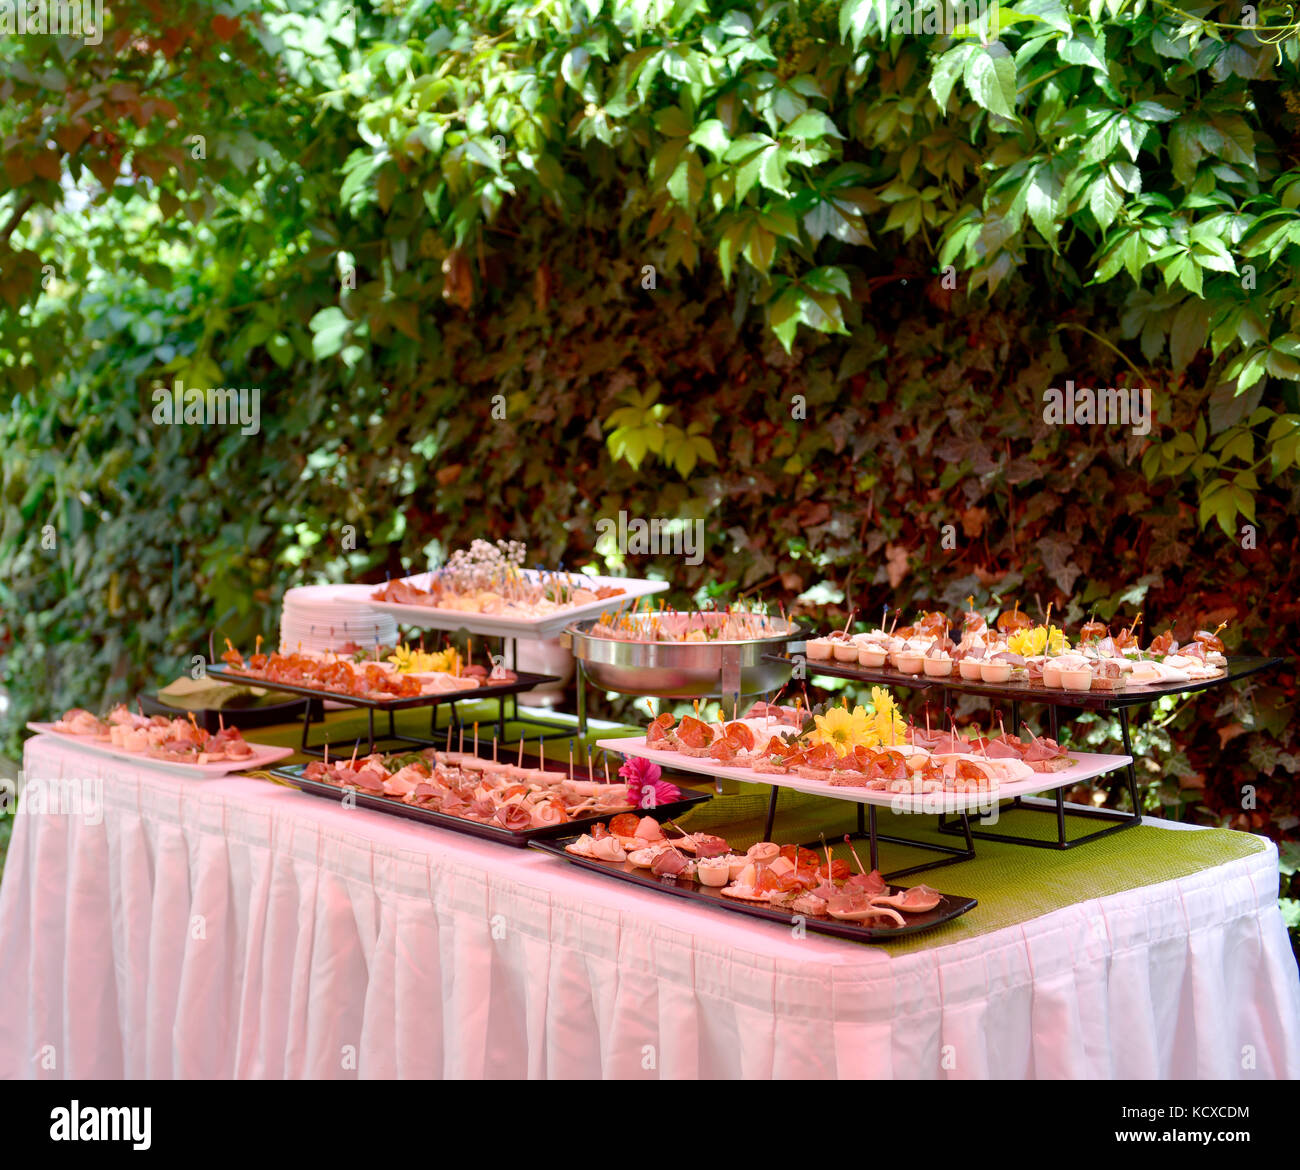 Catering food outdoor in a garden delicatessen buffet, cold cuts ...